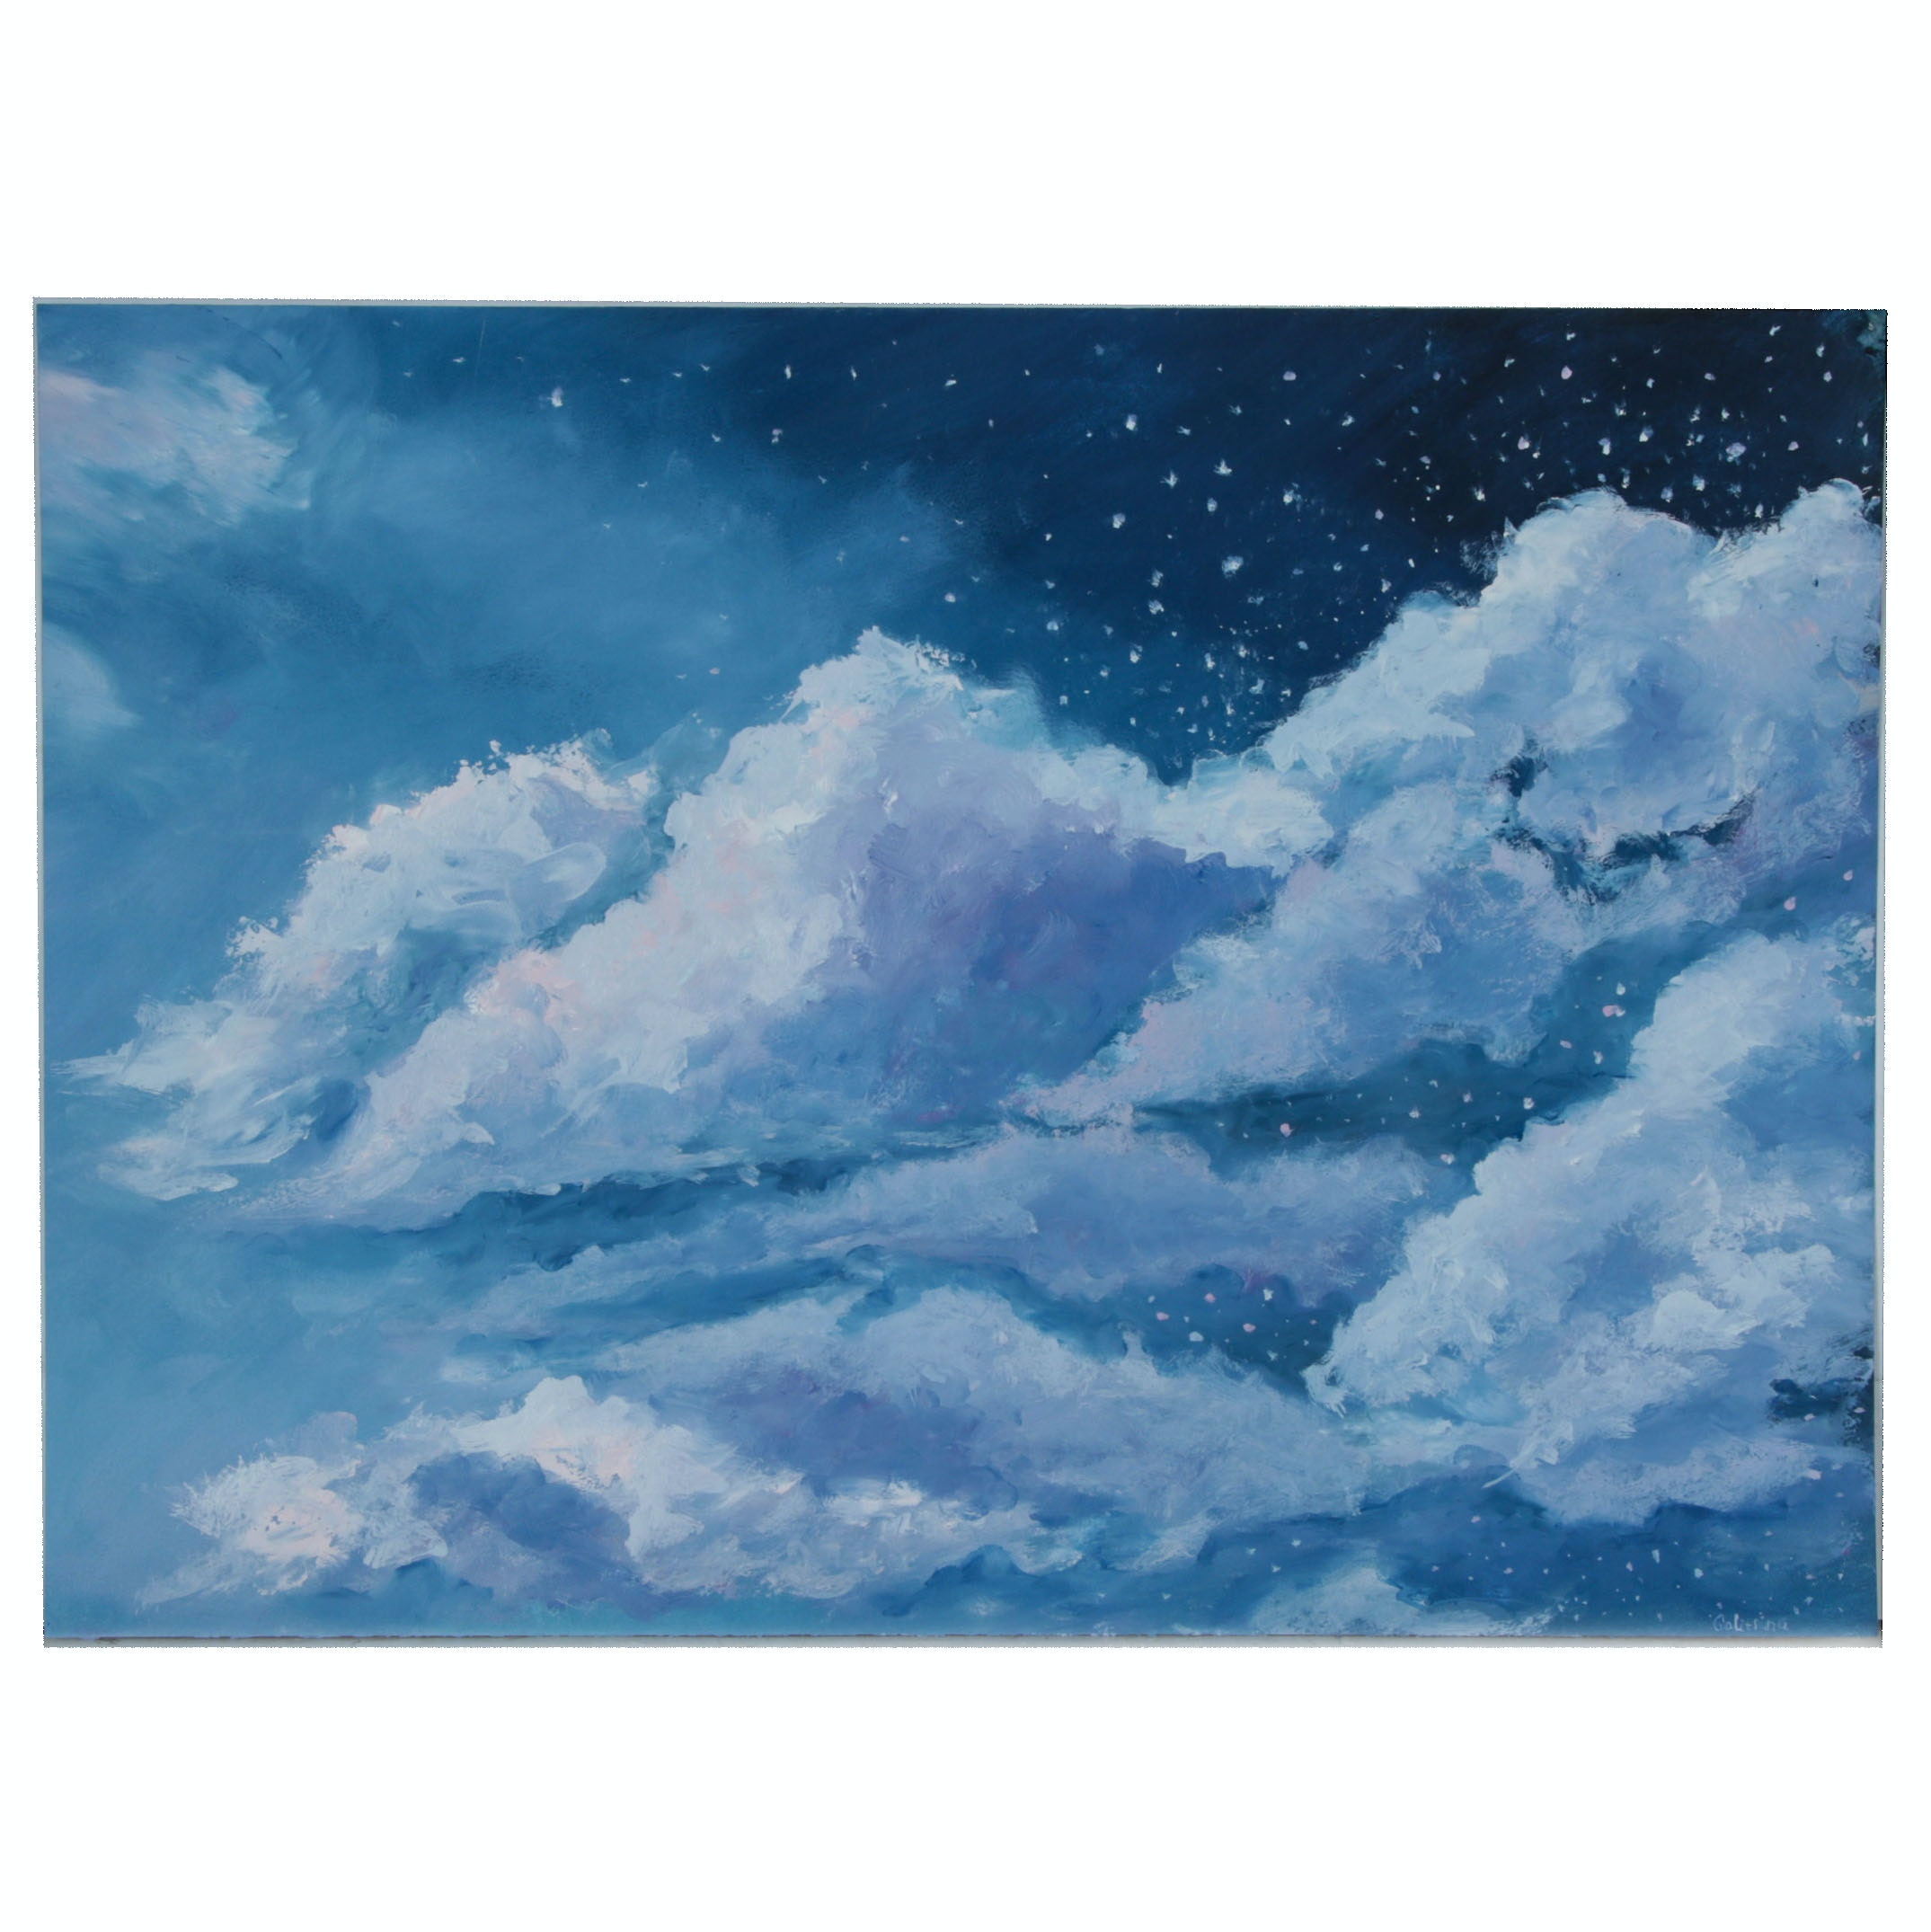 Galitsino Oil Painting of Clouds in the Dark Sky